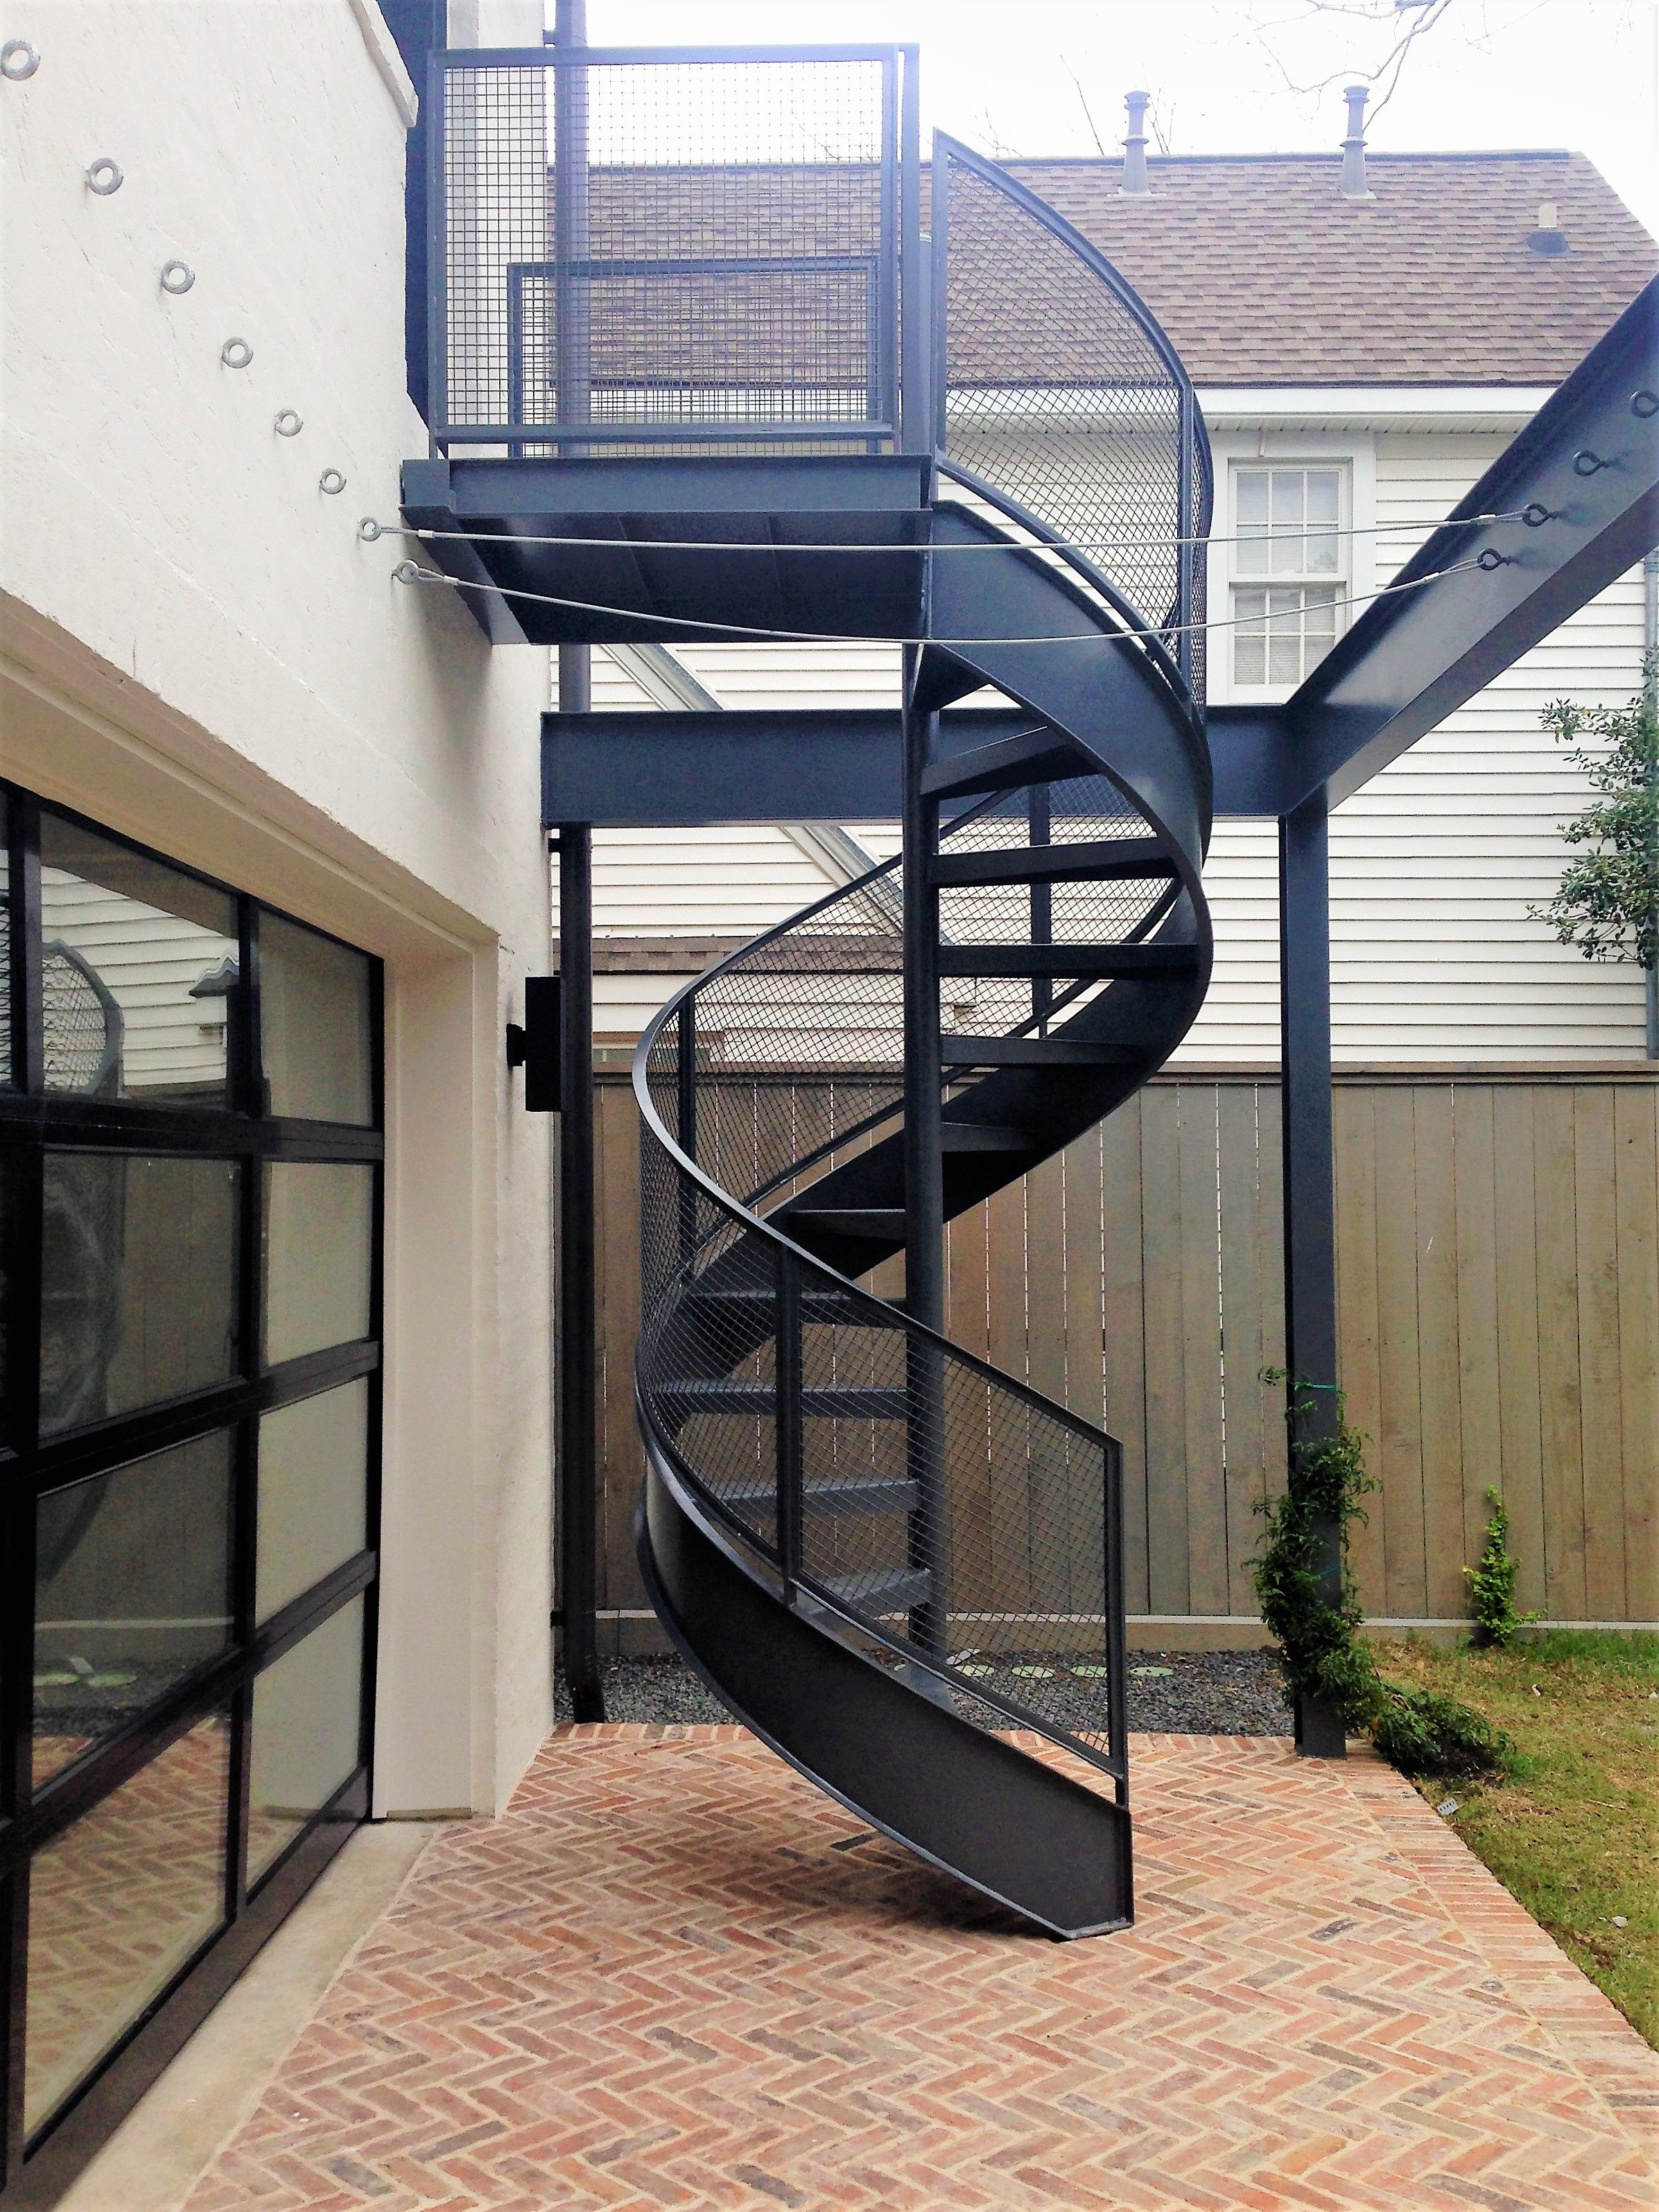 This Is An All Steel Code Compliant Spiral Stair Has A Flat Bar Handrail With Flat Bar Post Wi Spiral Staircase Outdoor Exterior Stairs Spiral Stairs Design